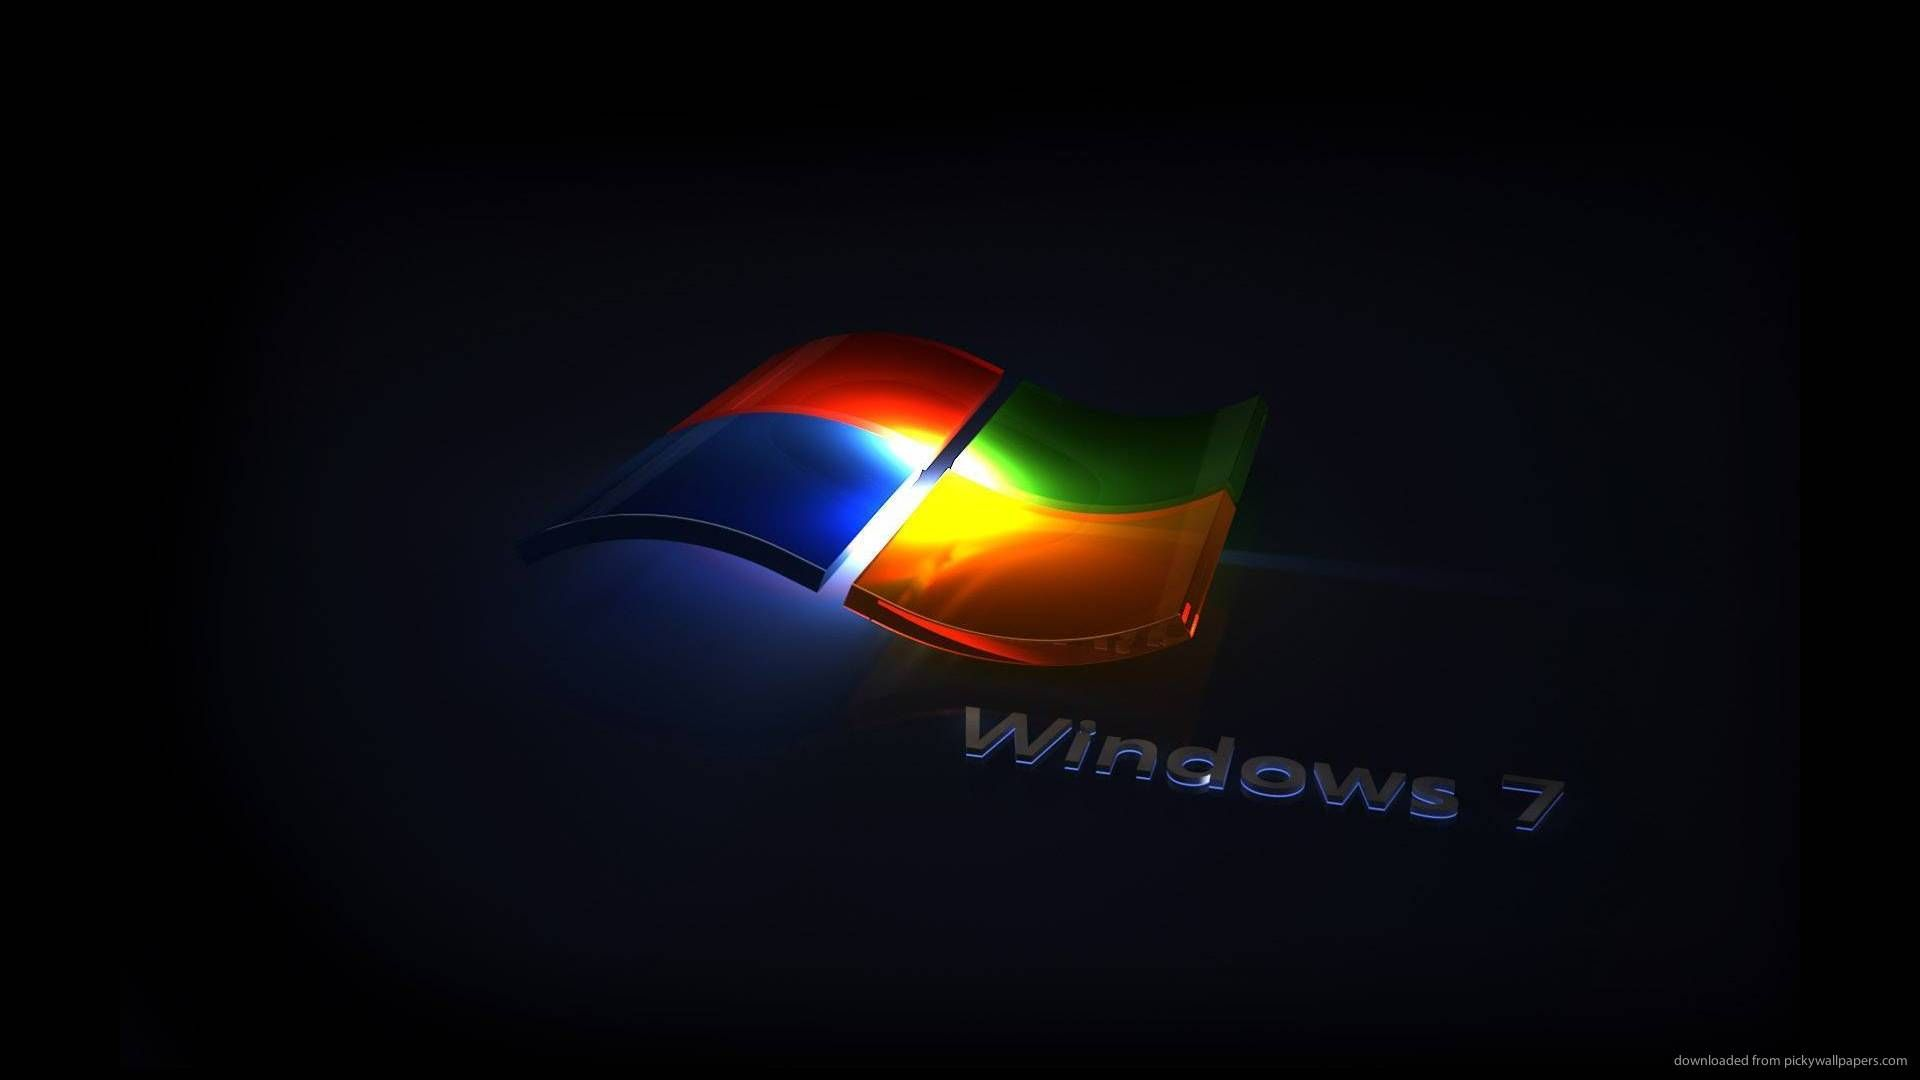 windows 7 1920x1080 glass 1920x1080 hd wallpaper and free stock